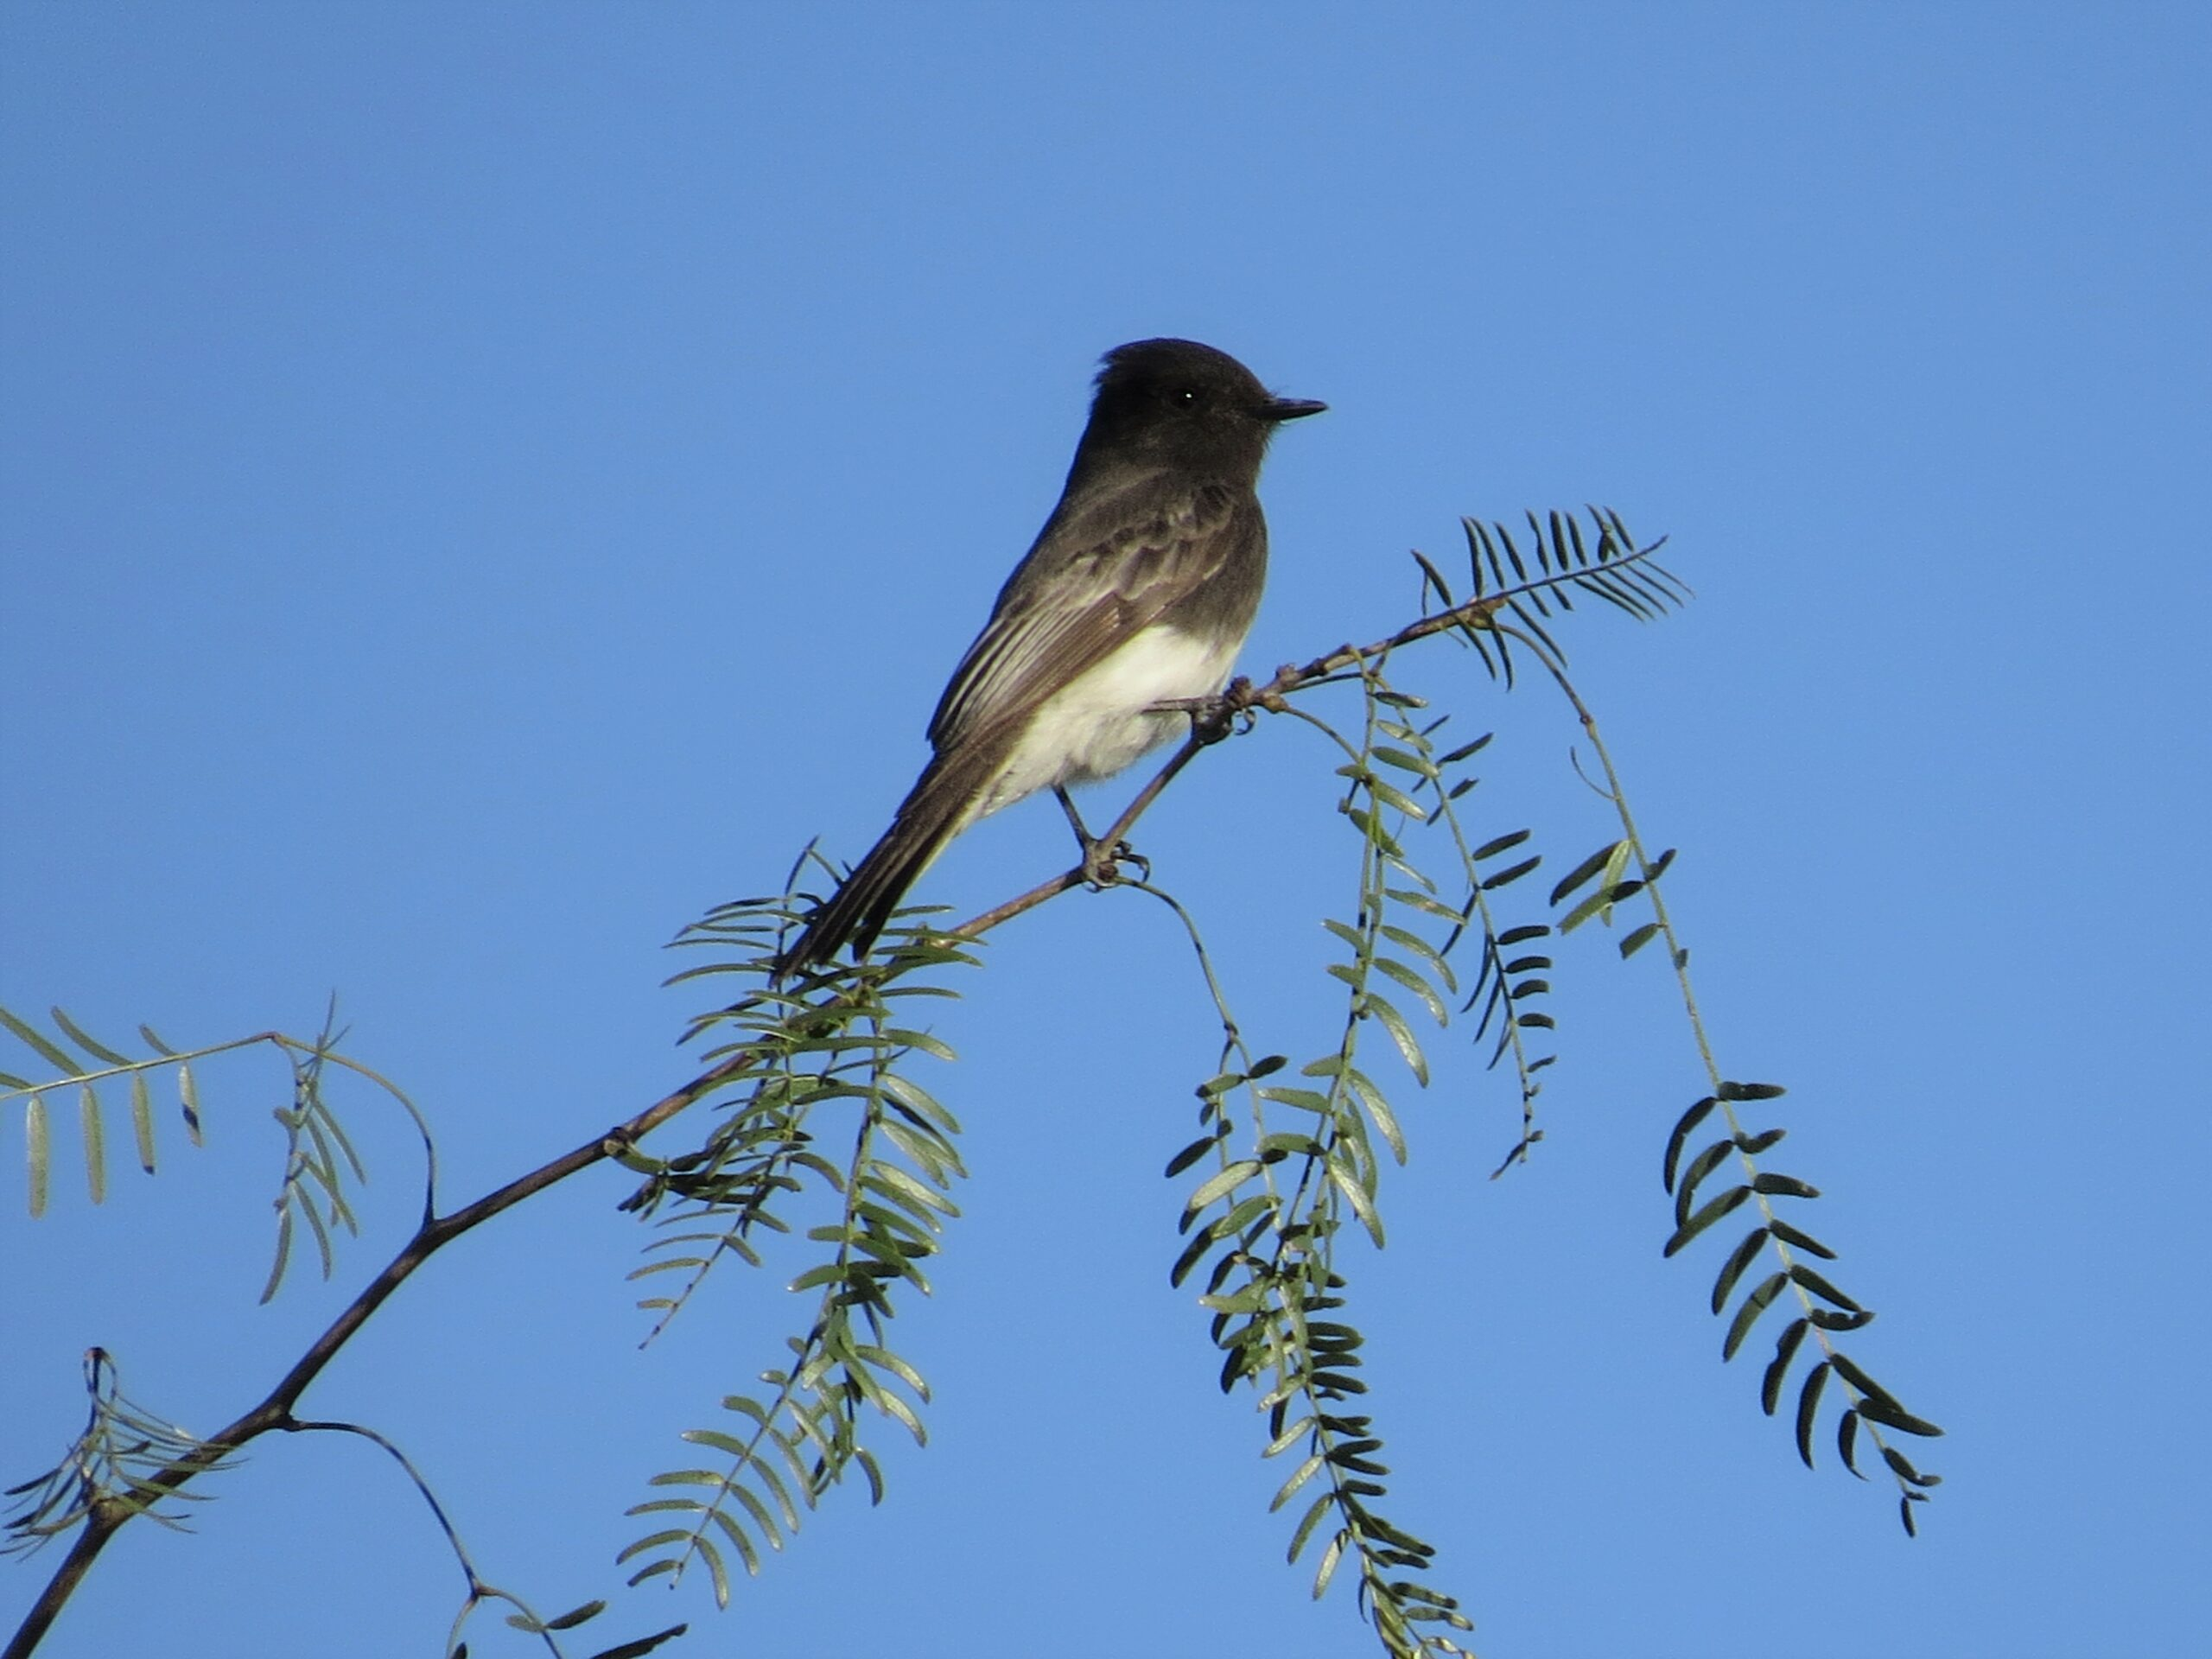 Black Phoebe by Lora Reynolds